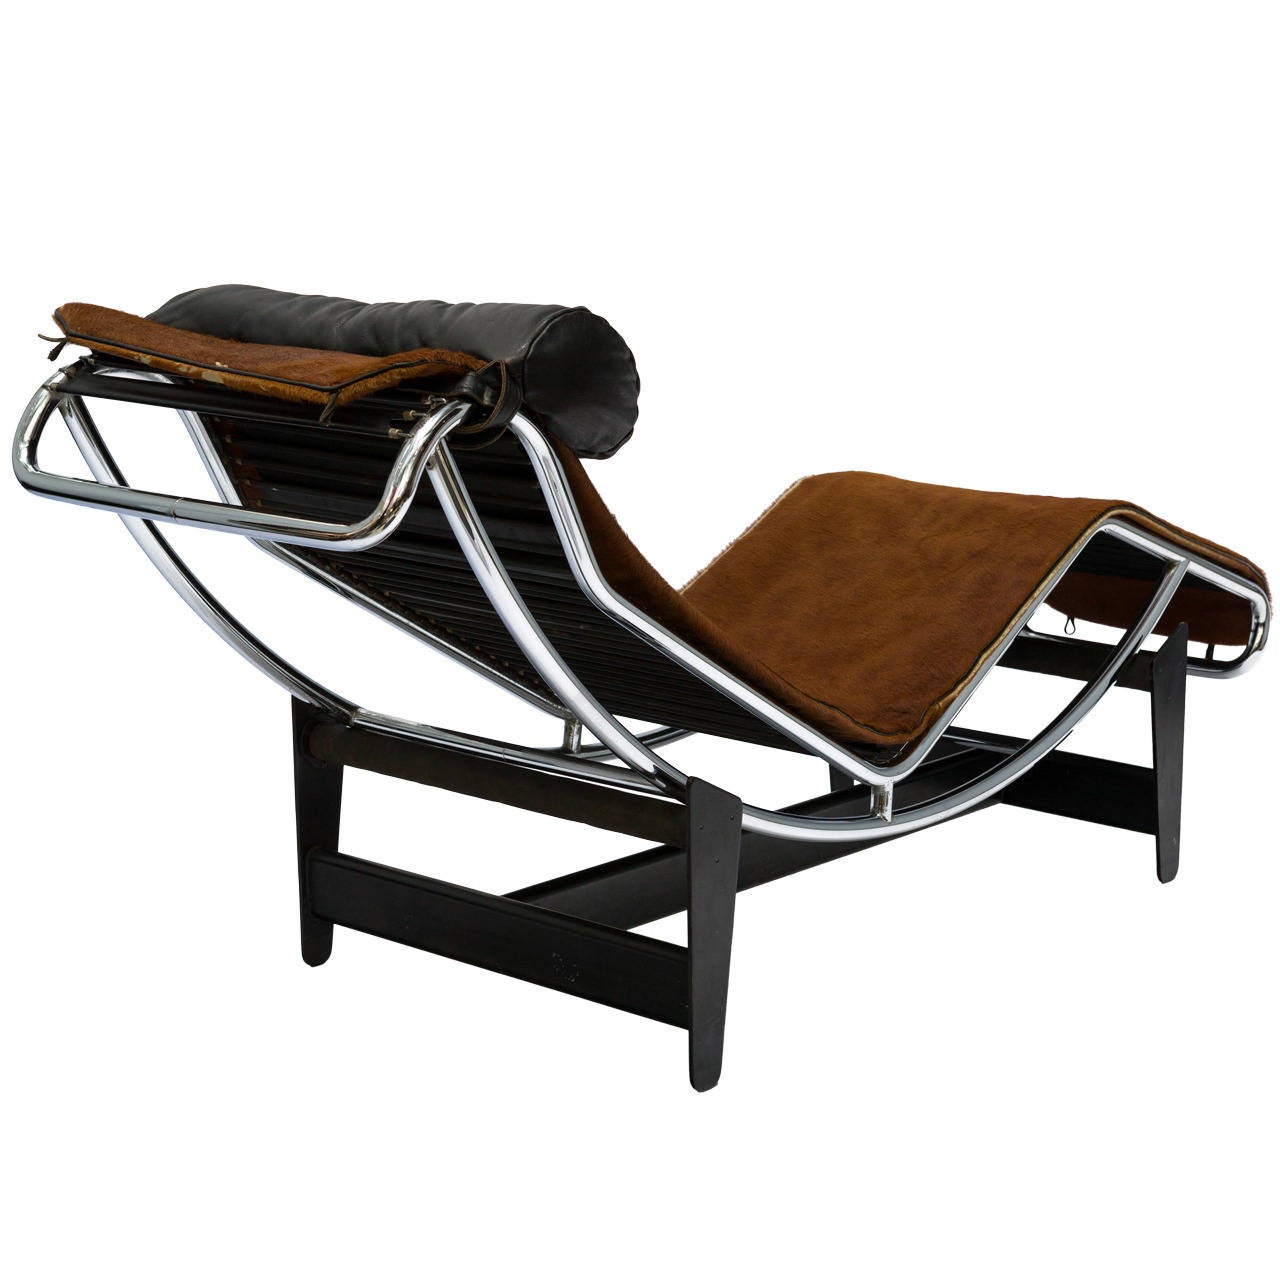 Le corbusier lc4 chaise lounge chair in cowhide for sale for Chaise longue cavallino